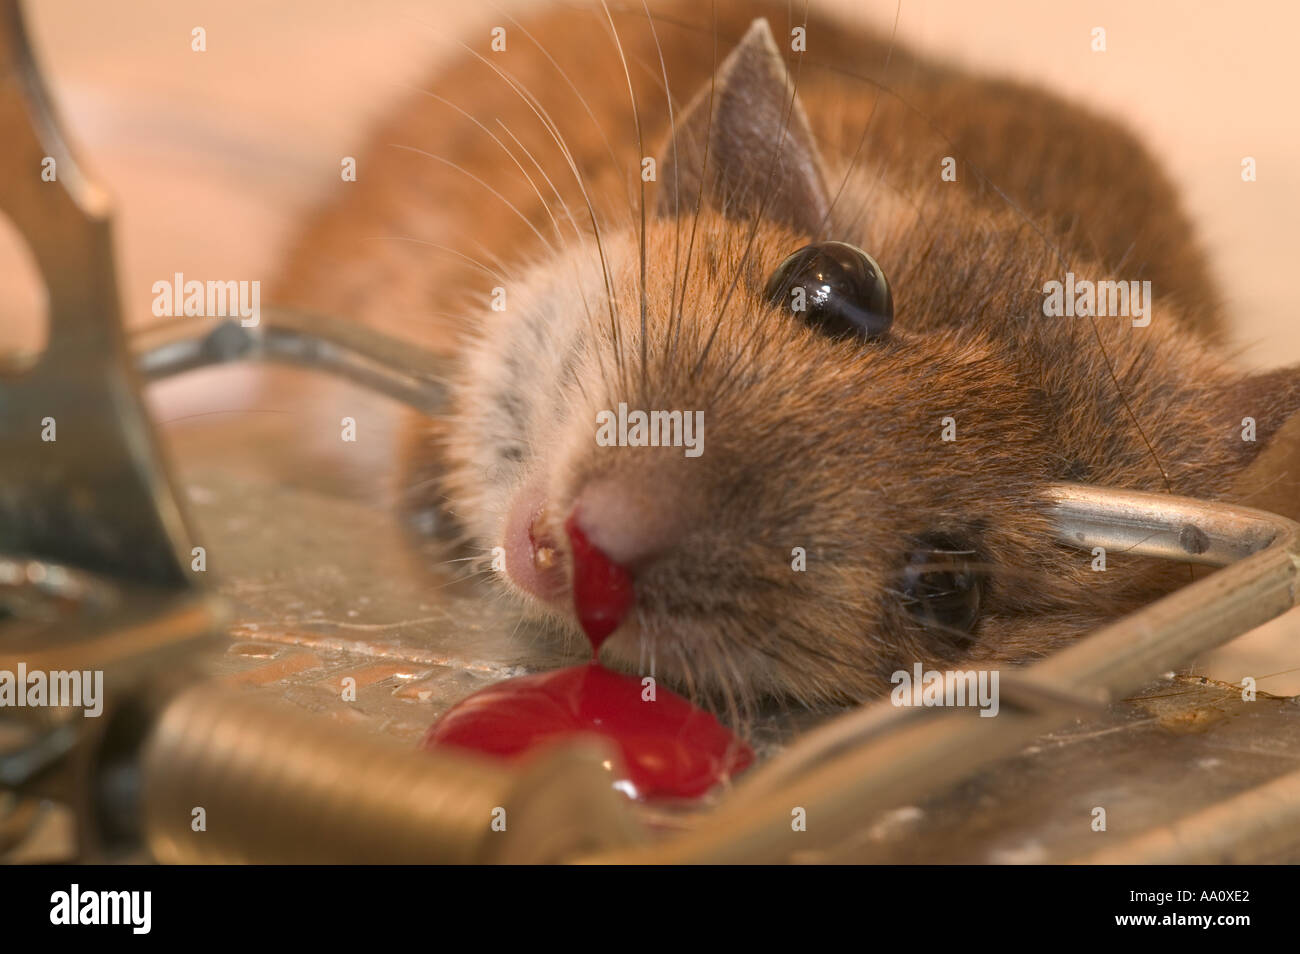 a mouse caught in a trap Stock Photo - Alamy